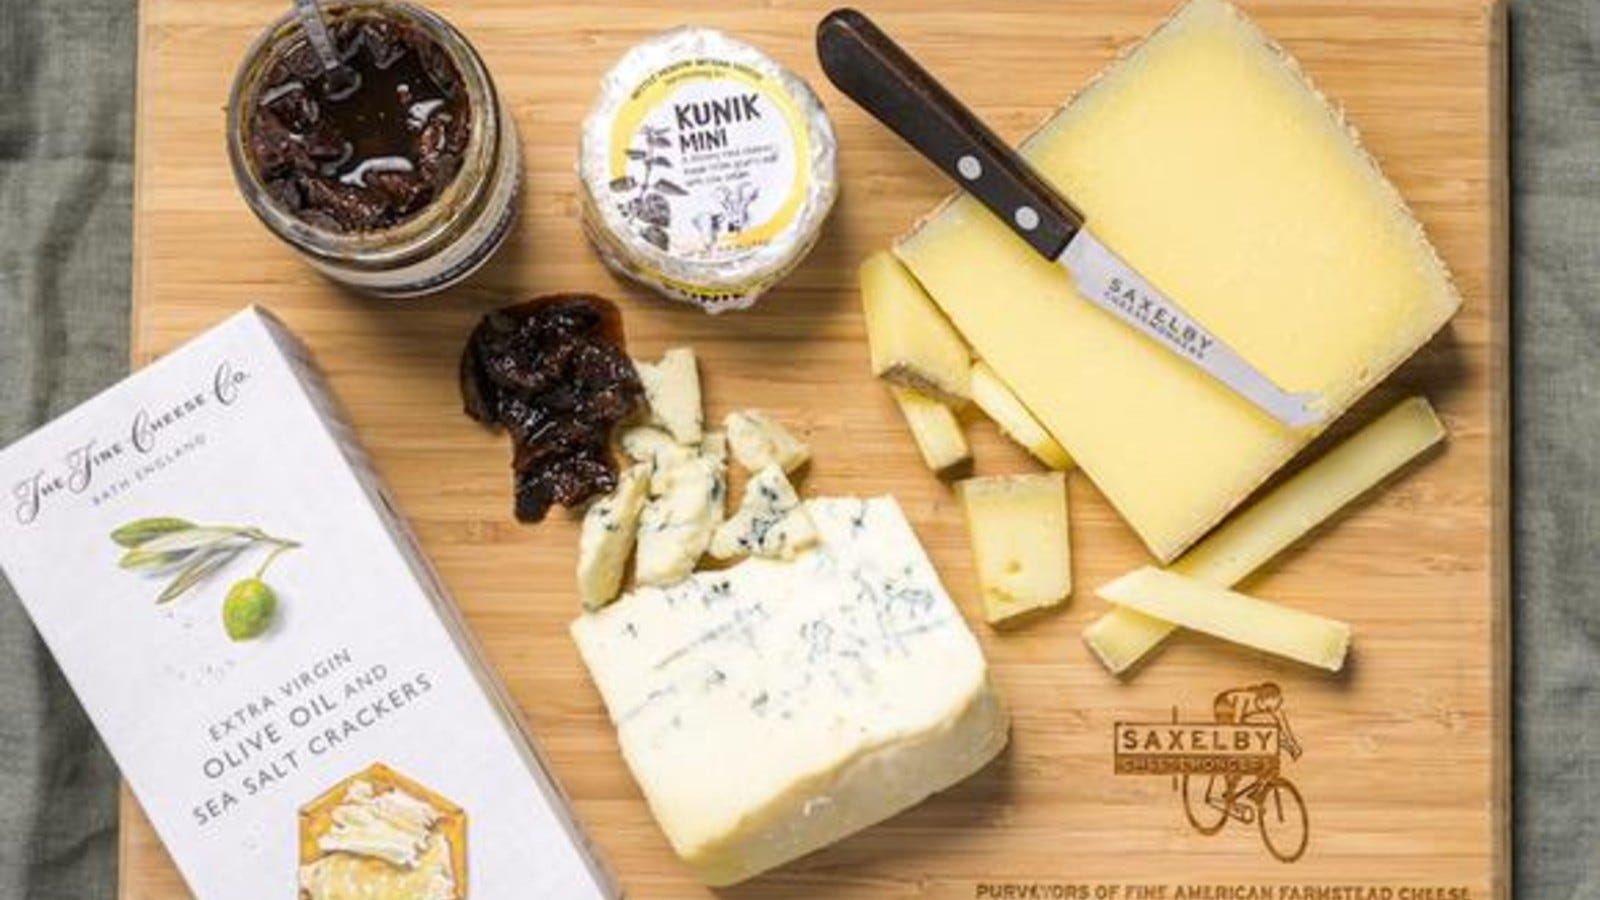 wooden cheeseboard with an assortment of cheese, jam, and crackers